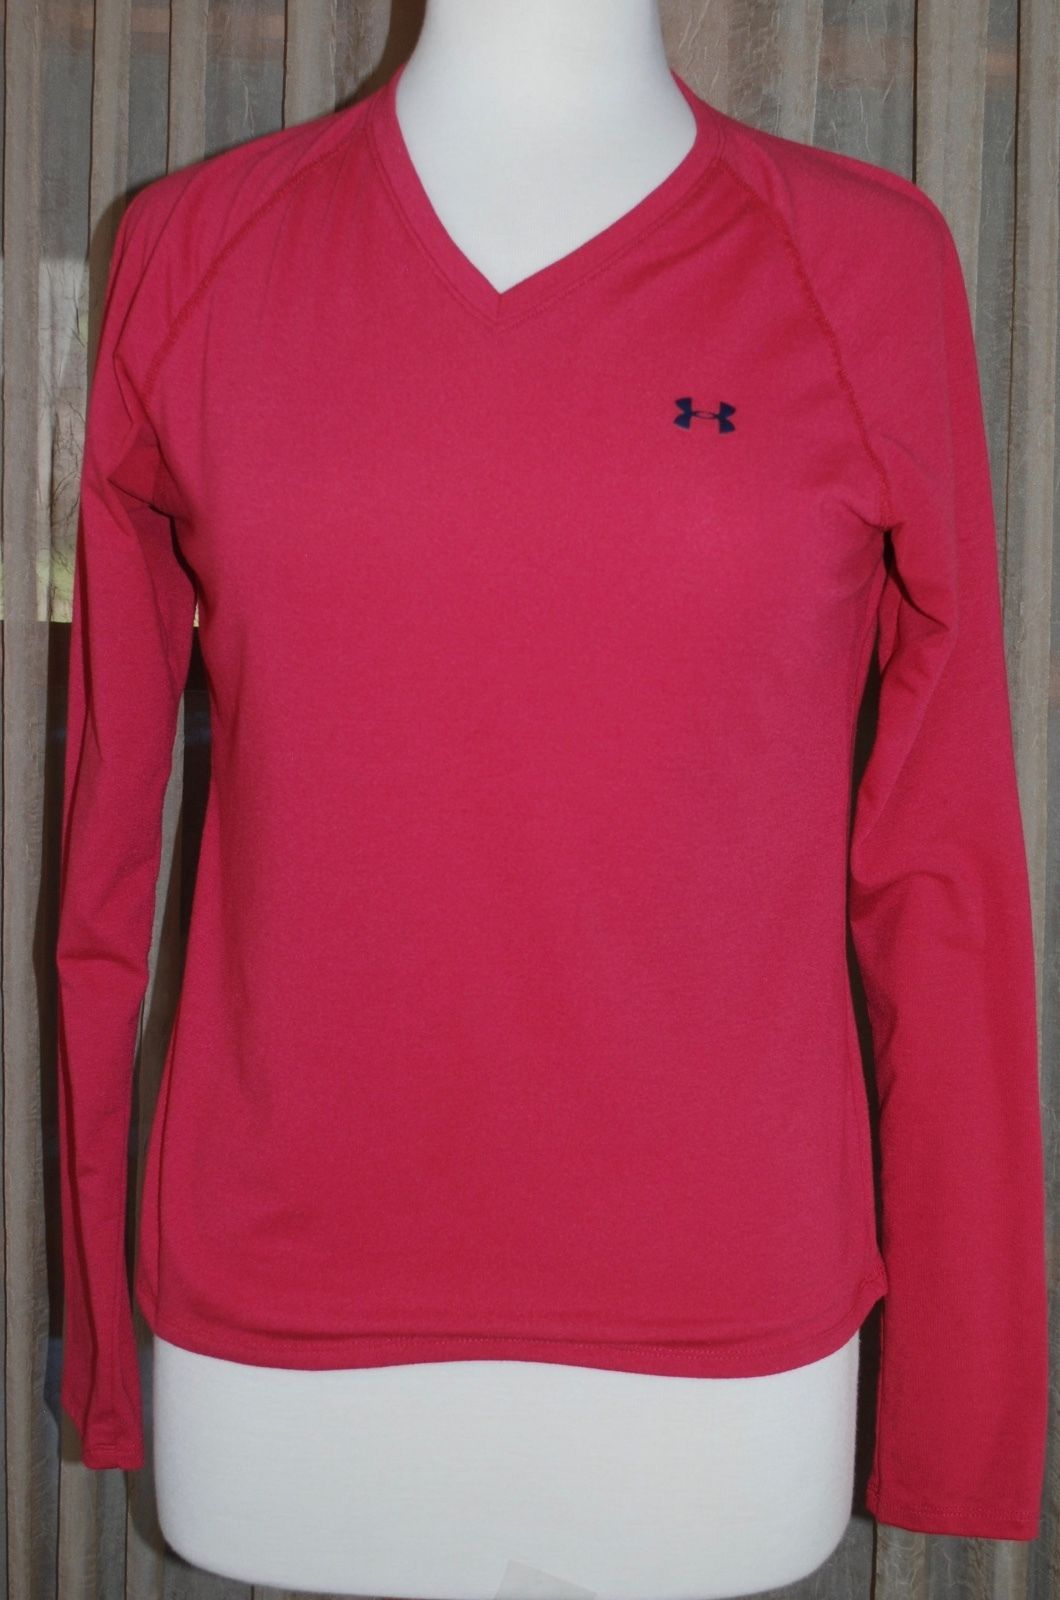 68898ee728570 Under Armour Women s V Neck Athletic Shirt and 50 similar items. 57